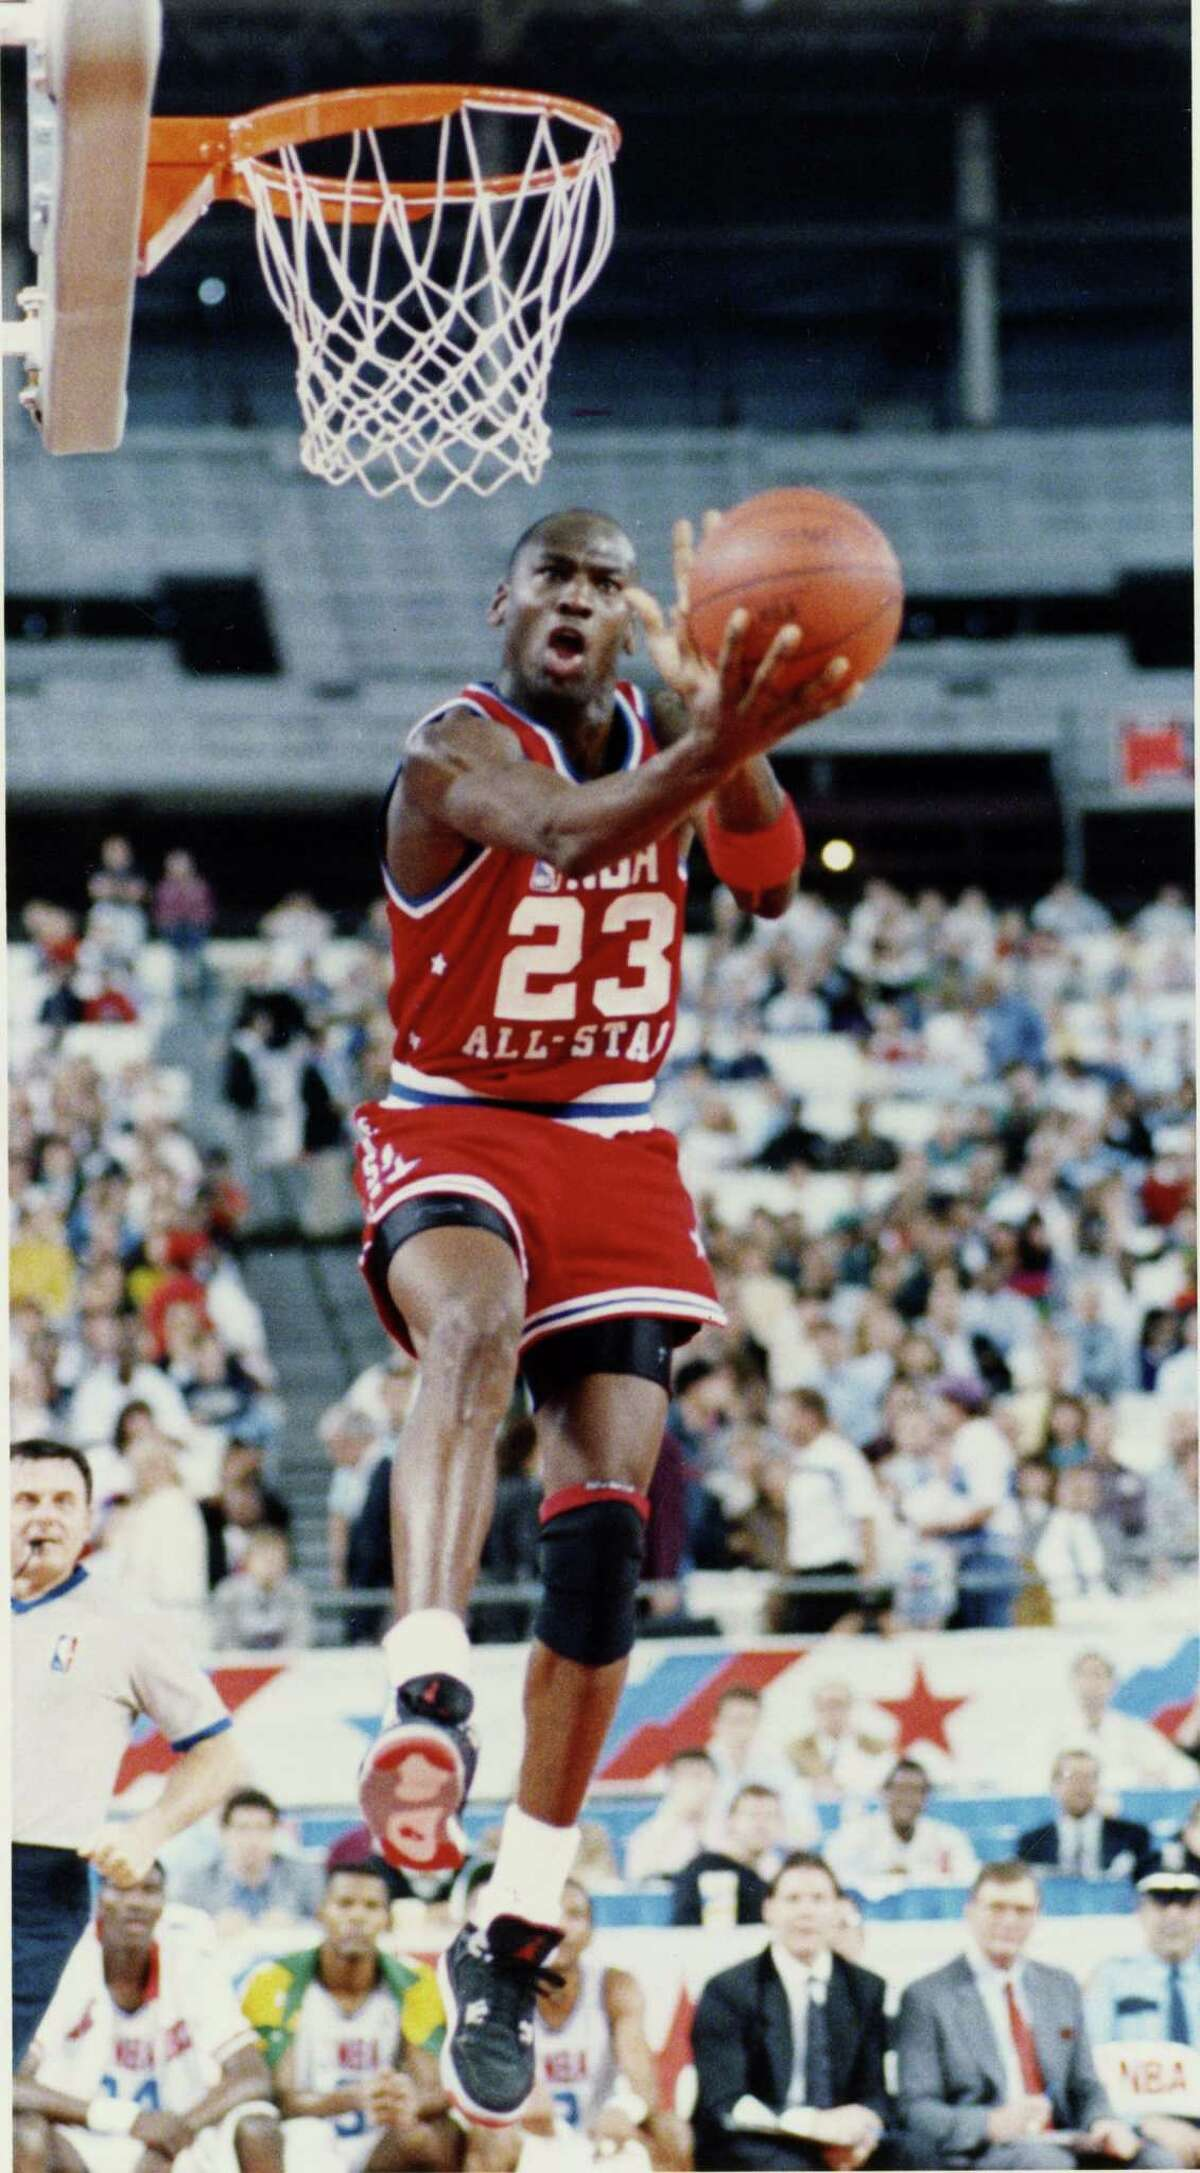 02/12/1989 - NBA ALL STAR GAME AT ASTRODOME - Chicago Bulls Michael Jordan takes the ball to the hoop.